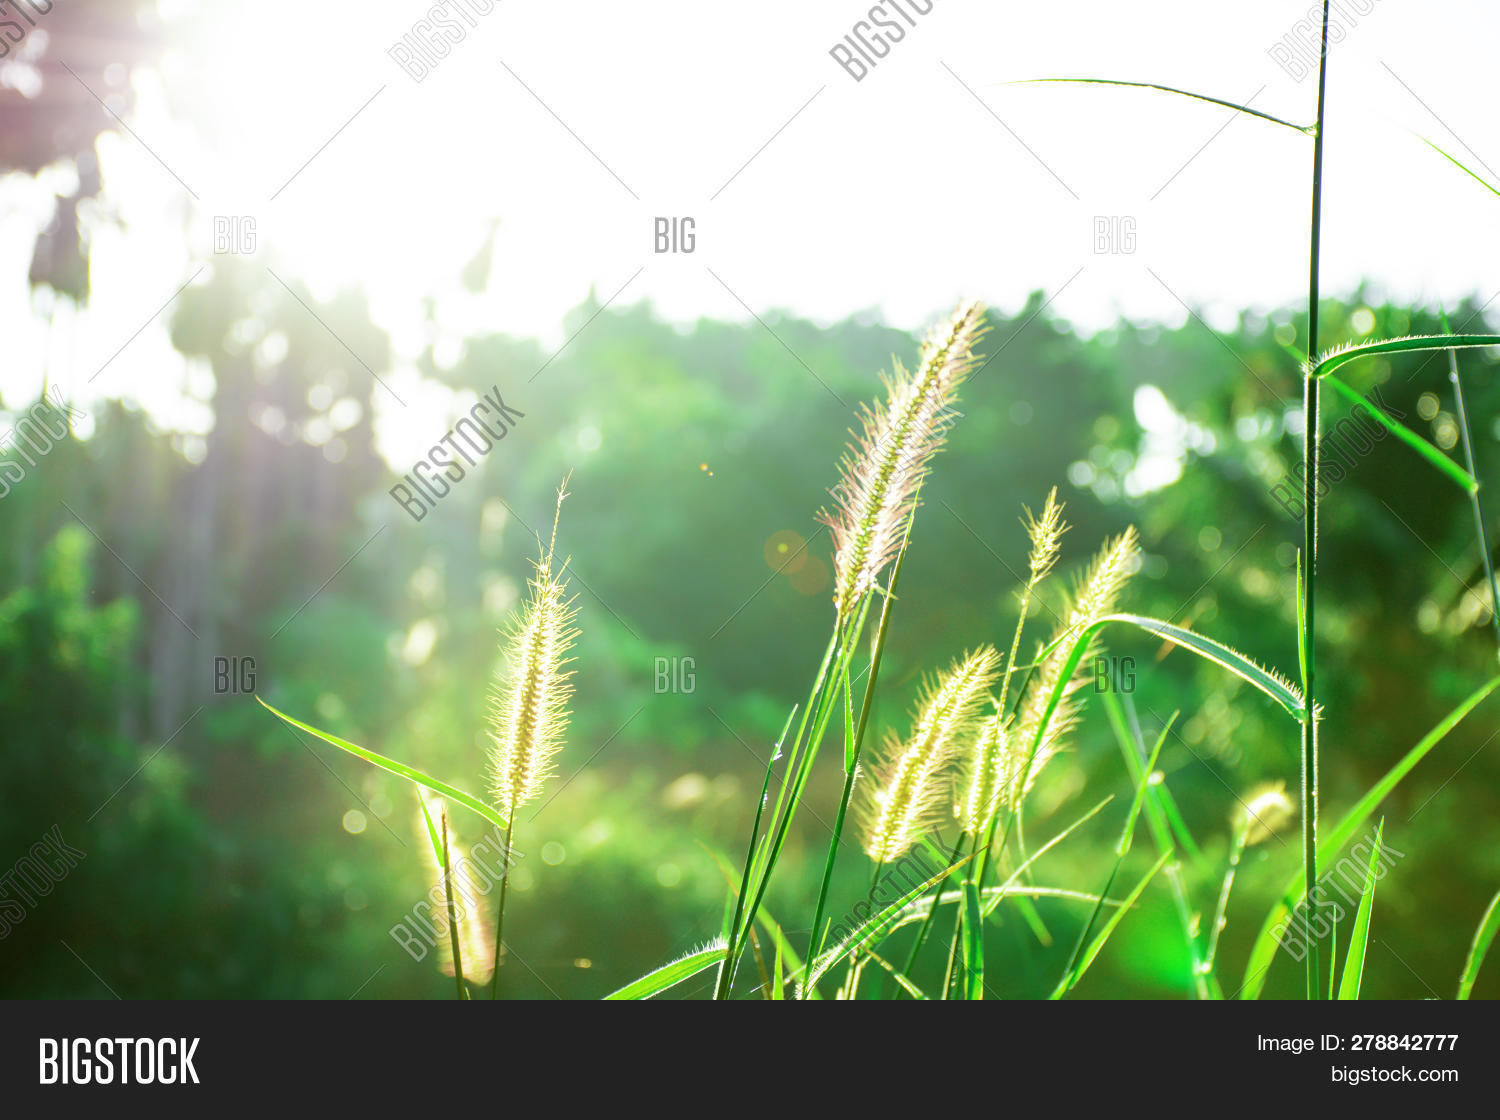 abstract,agriculture,autumn,background,beautiful,beauty,bright,close,closeup,colorful,dew,field,flare,flower,forest,fresh,frost,garden,grass,green,growth,land,landscape,lawn,leaf,leaves,light,meadow,morning,natural,nature,outdoor,plant,raindrop,rays,scenery,season,sky,soft,spring,summer,sun,sunlight,sunny,sunrise,sunset,sunshine,texture,vibrant,yellow